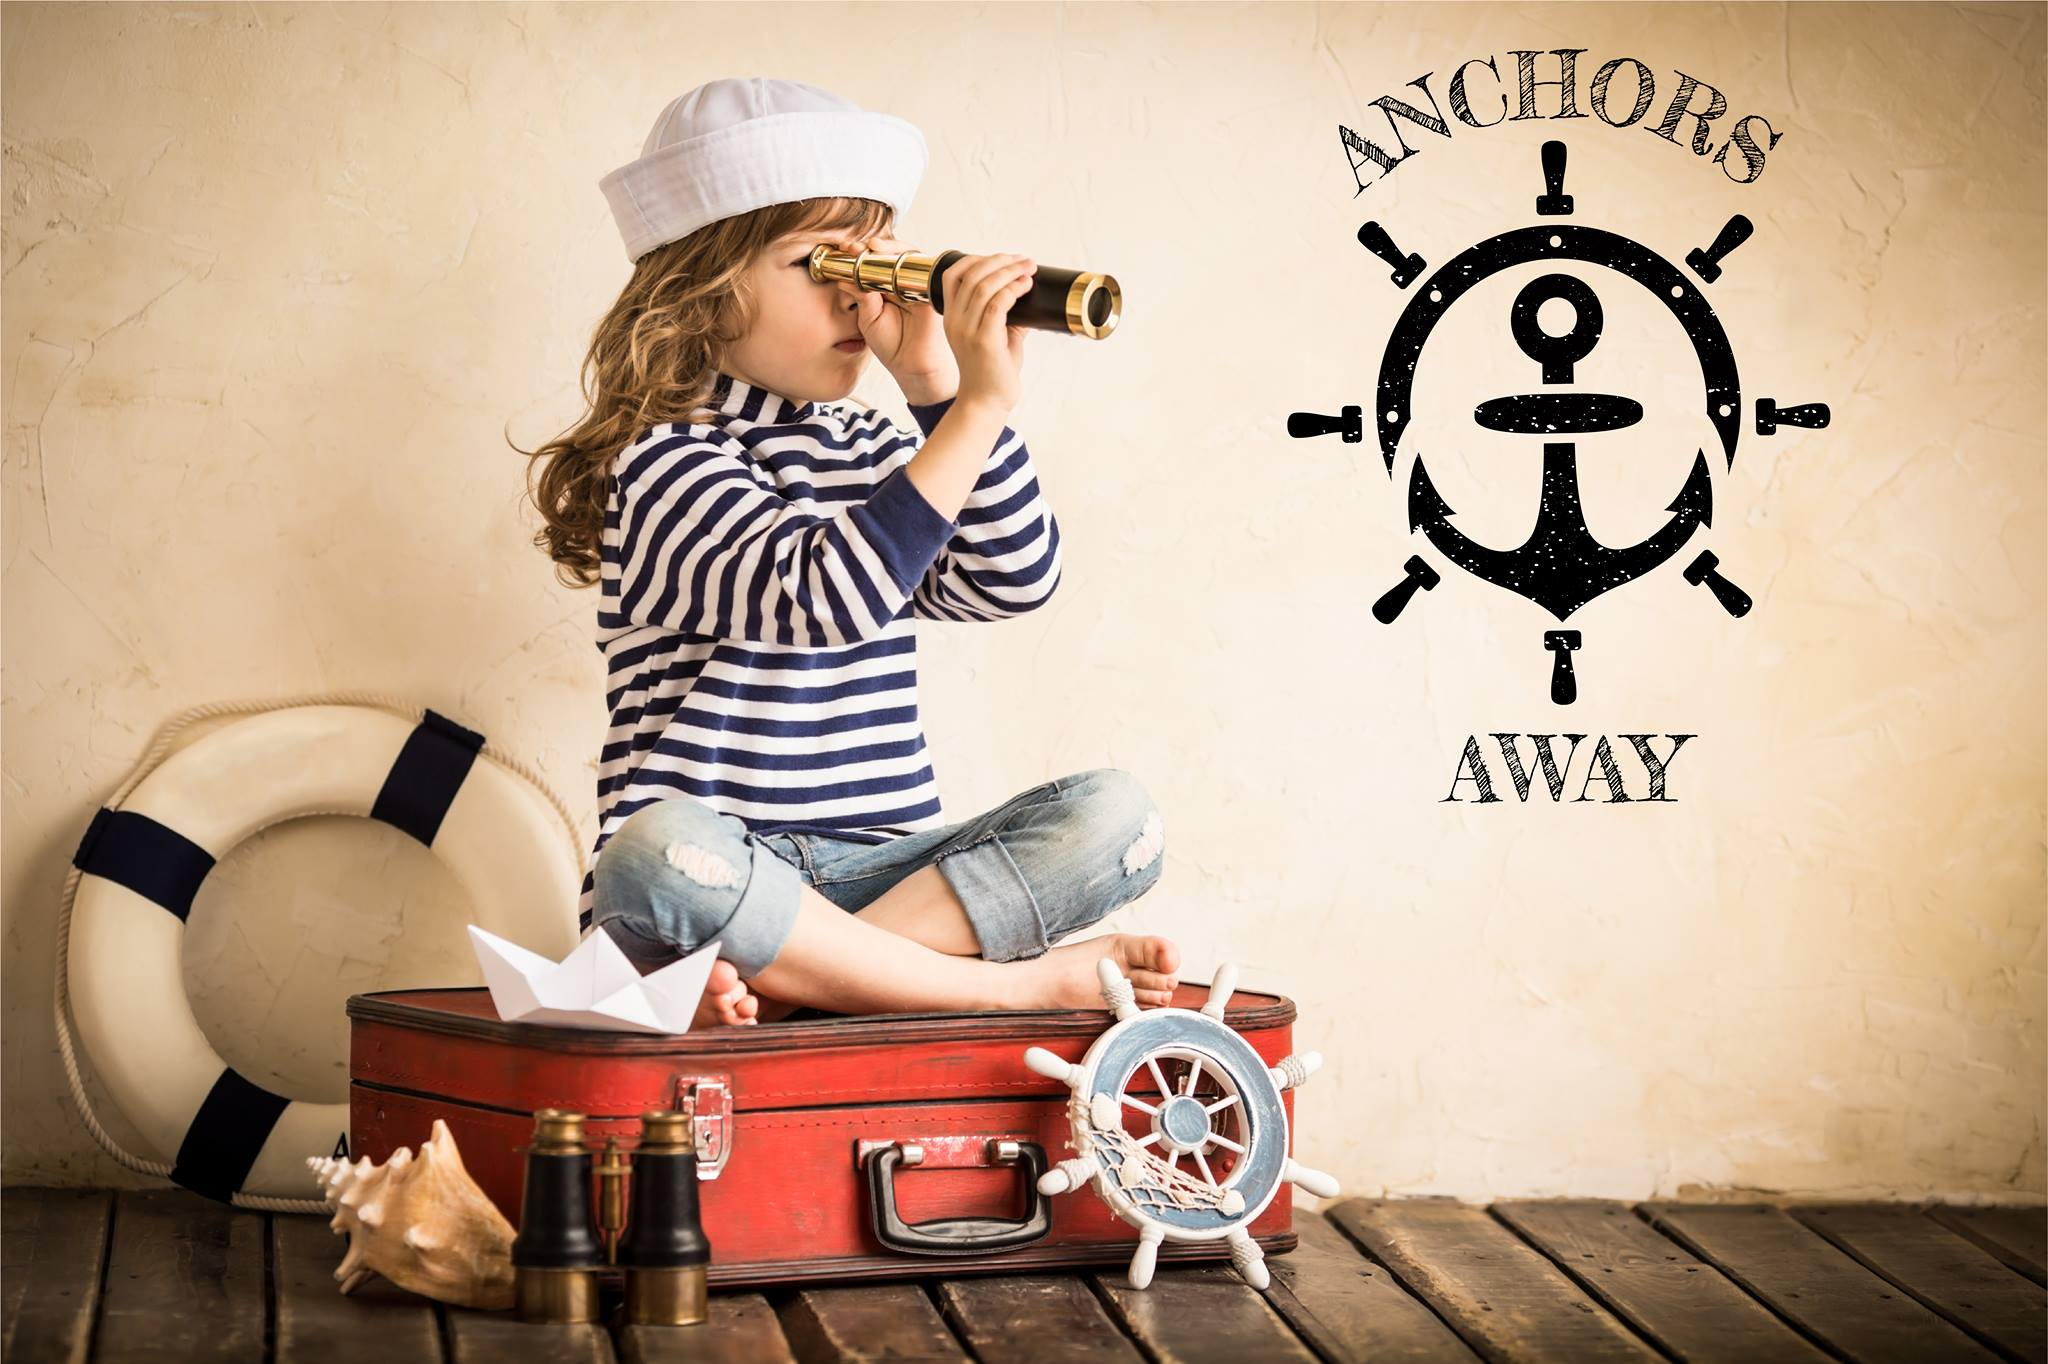 Learn more about Anchors Away Daycare by clicking on the picture